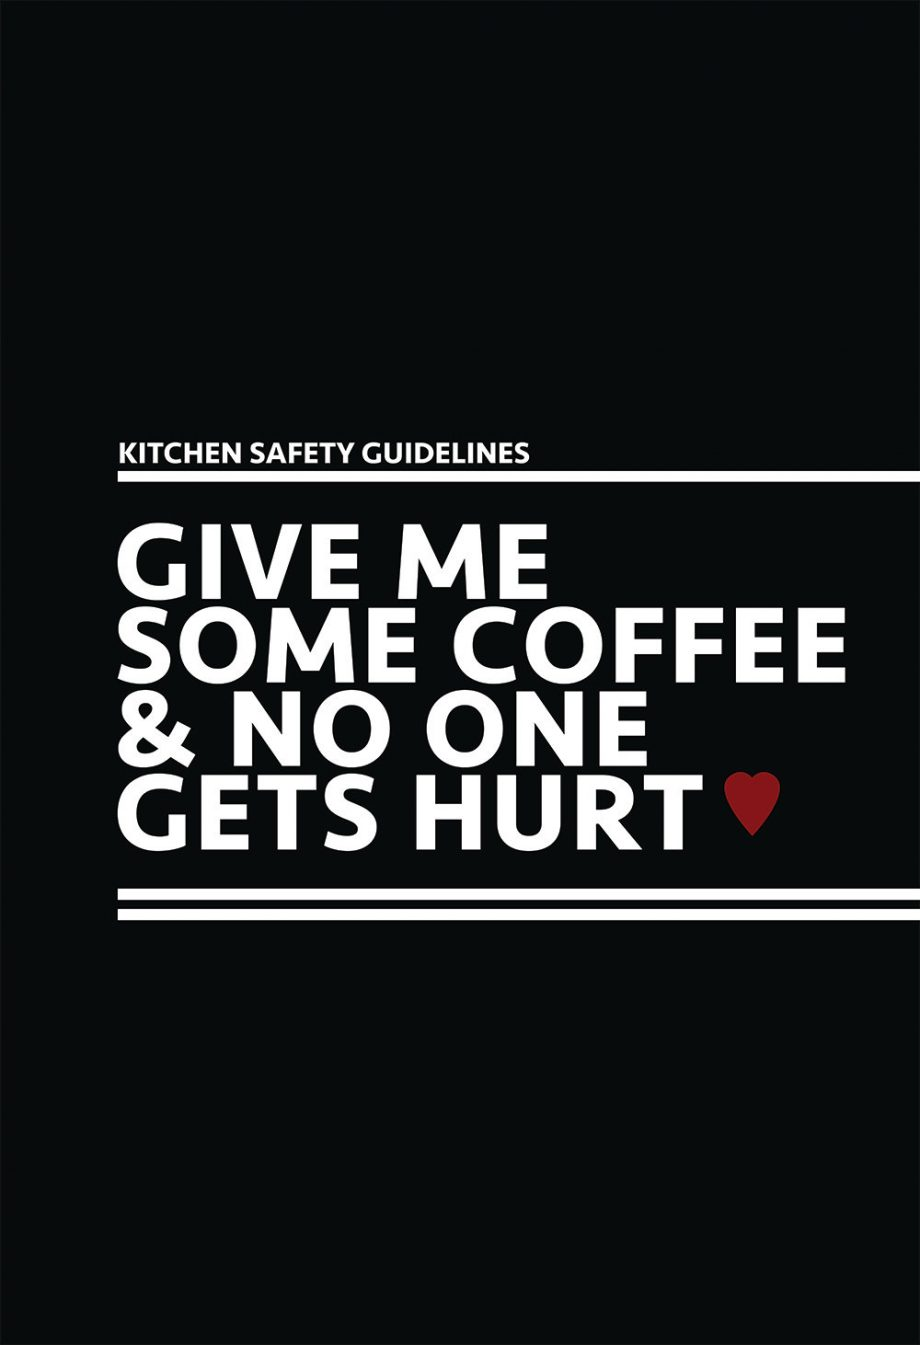 coffee-poster-kitchen-print-original-giclee-print-on-paper-canvas-funny-home-kitchen-decor-5817b6522.jpg